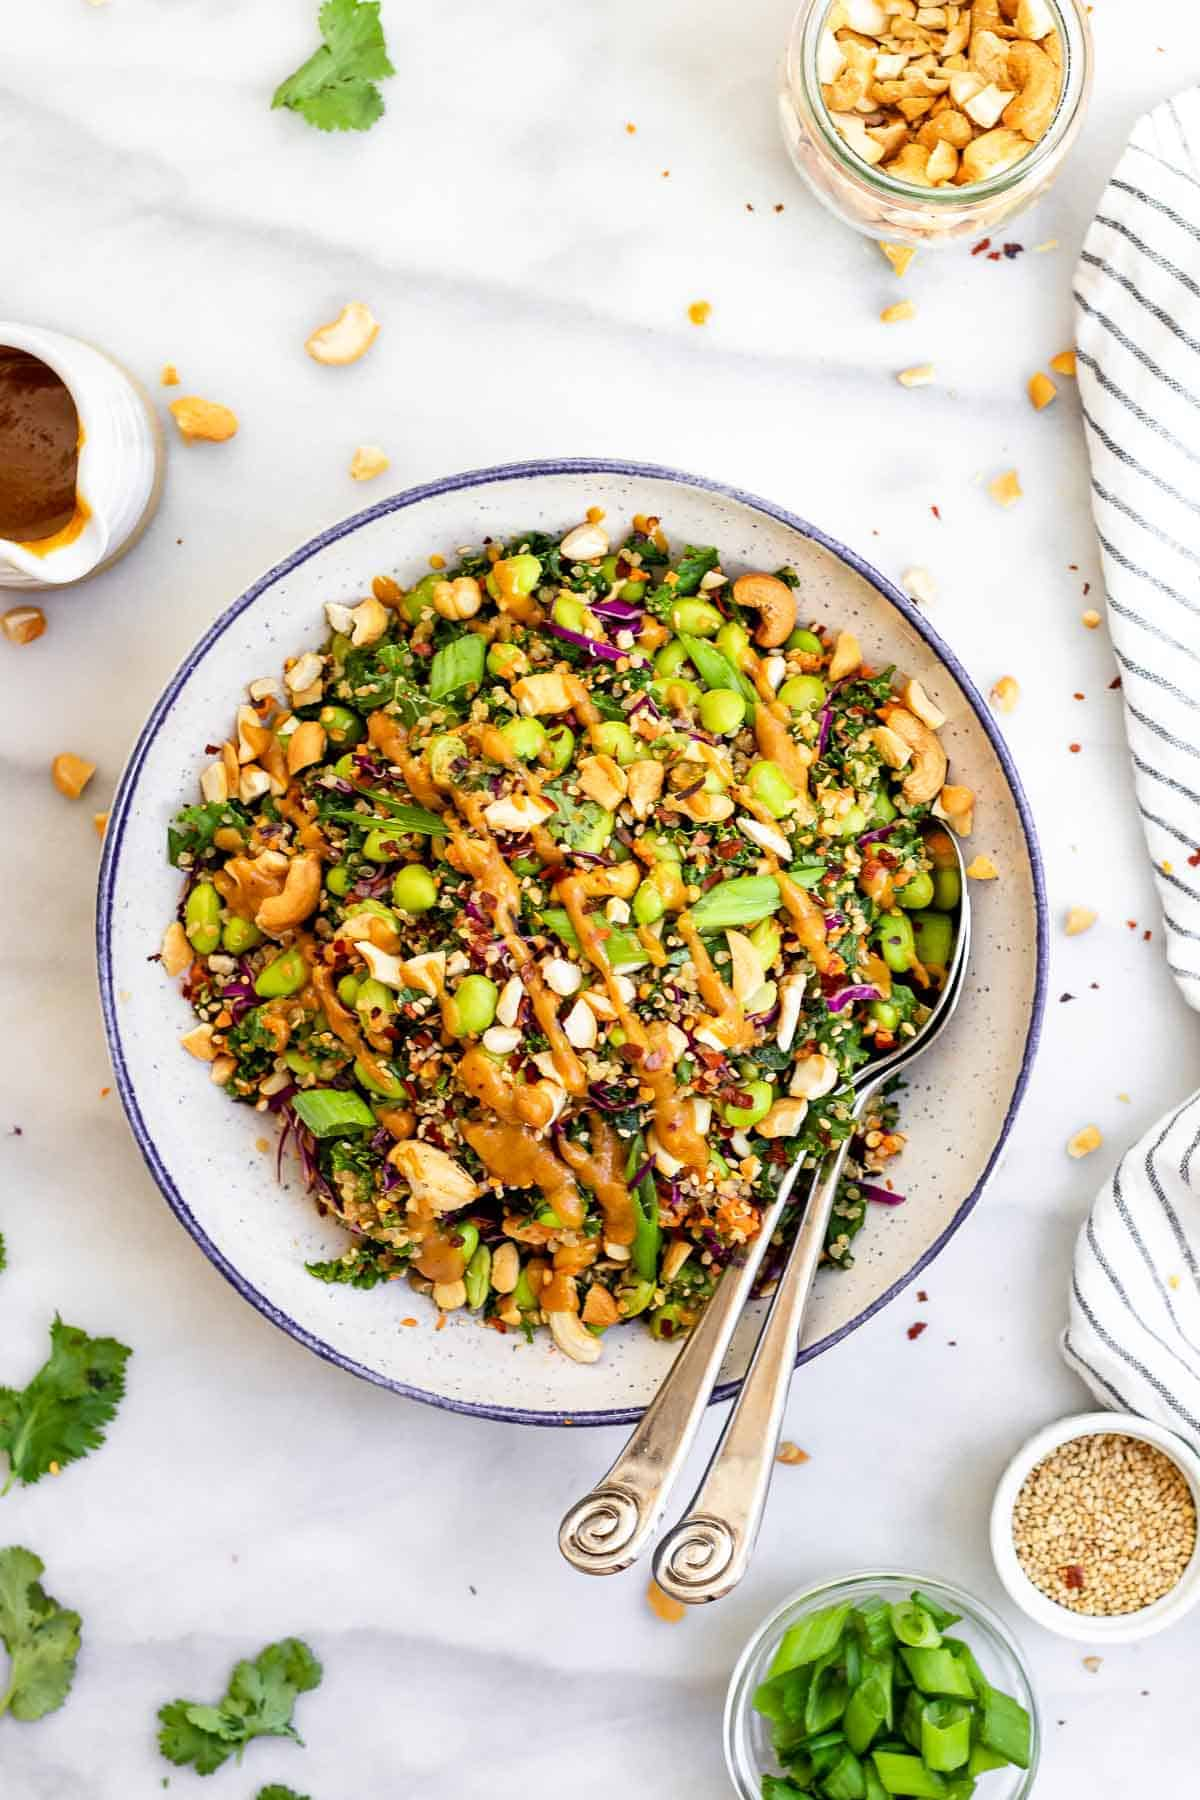 Edamame salad in a large bowl with asian peanut dressing.